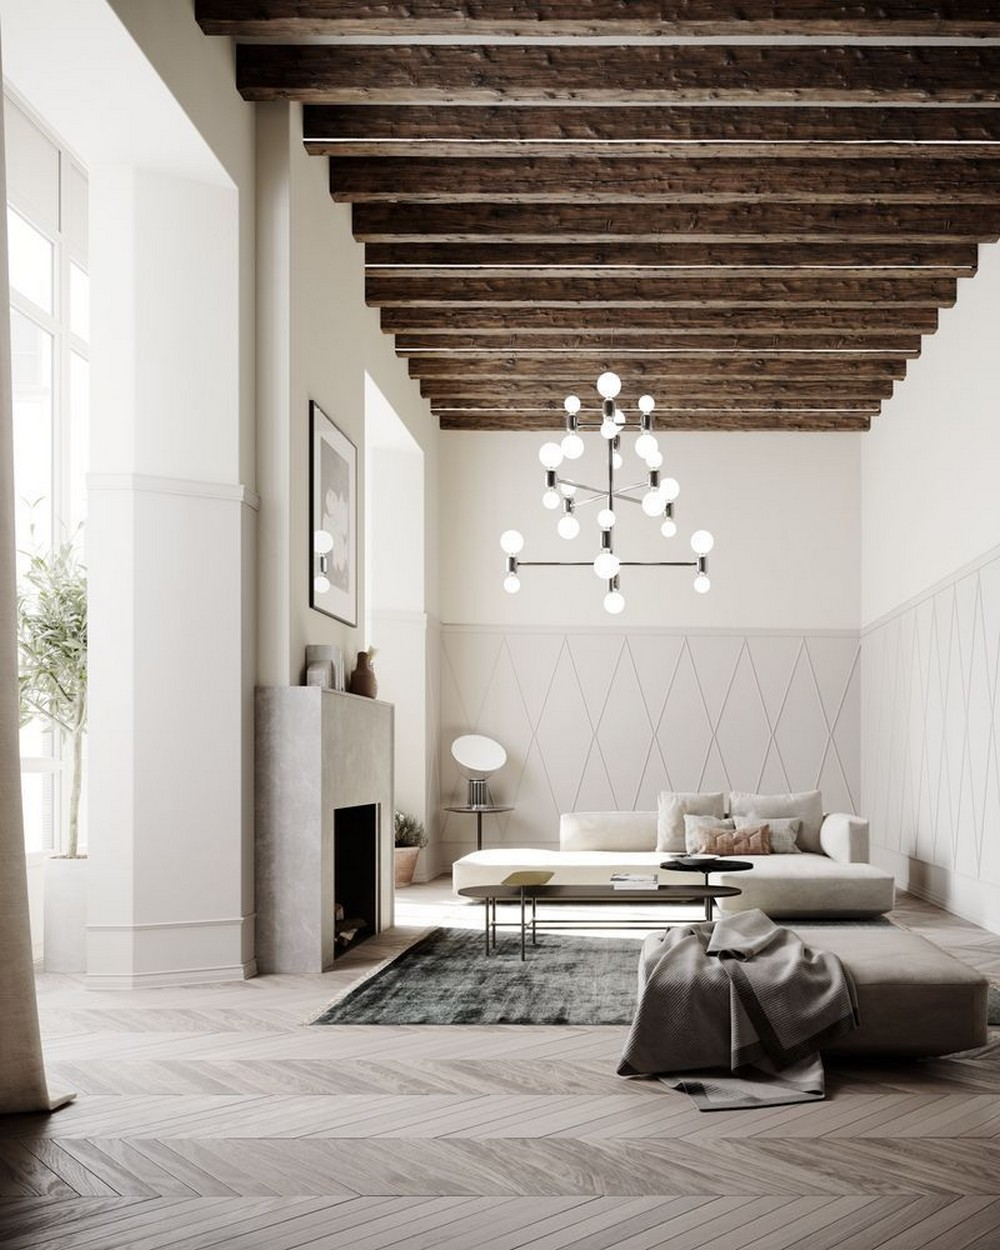 7 Comfy and Stylish Living Room Decor Ideas to Seriously Consider 8 living room decor 7 Comfy and Stylish Living Room Decor Ideas to Seriously Consider 7 Comfy and Stylish Living Room Decor Ideas to Seriously Consider 8